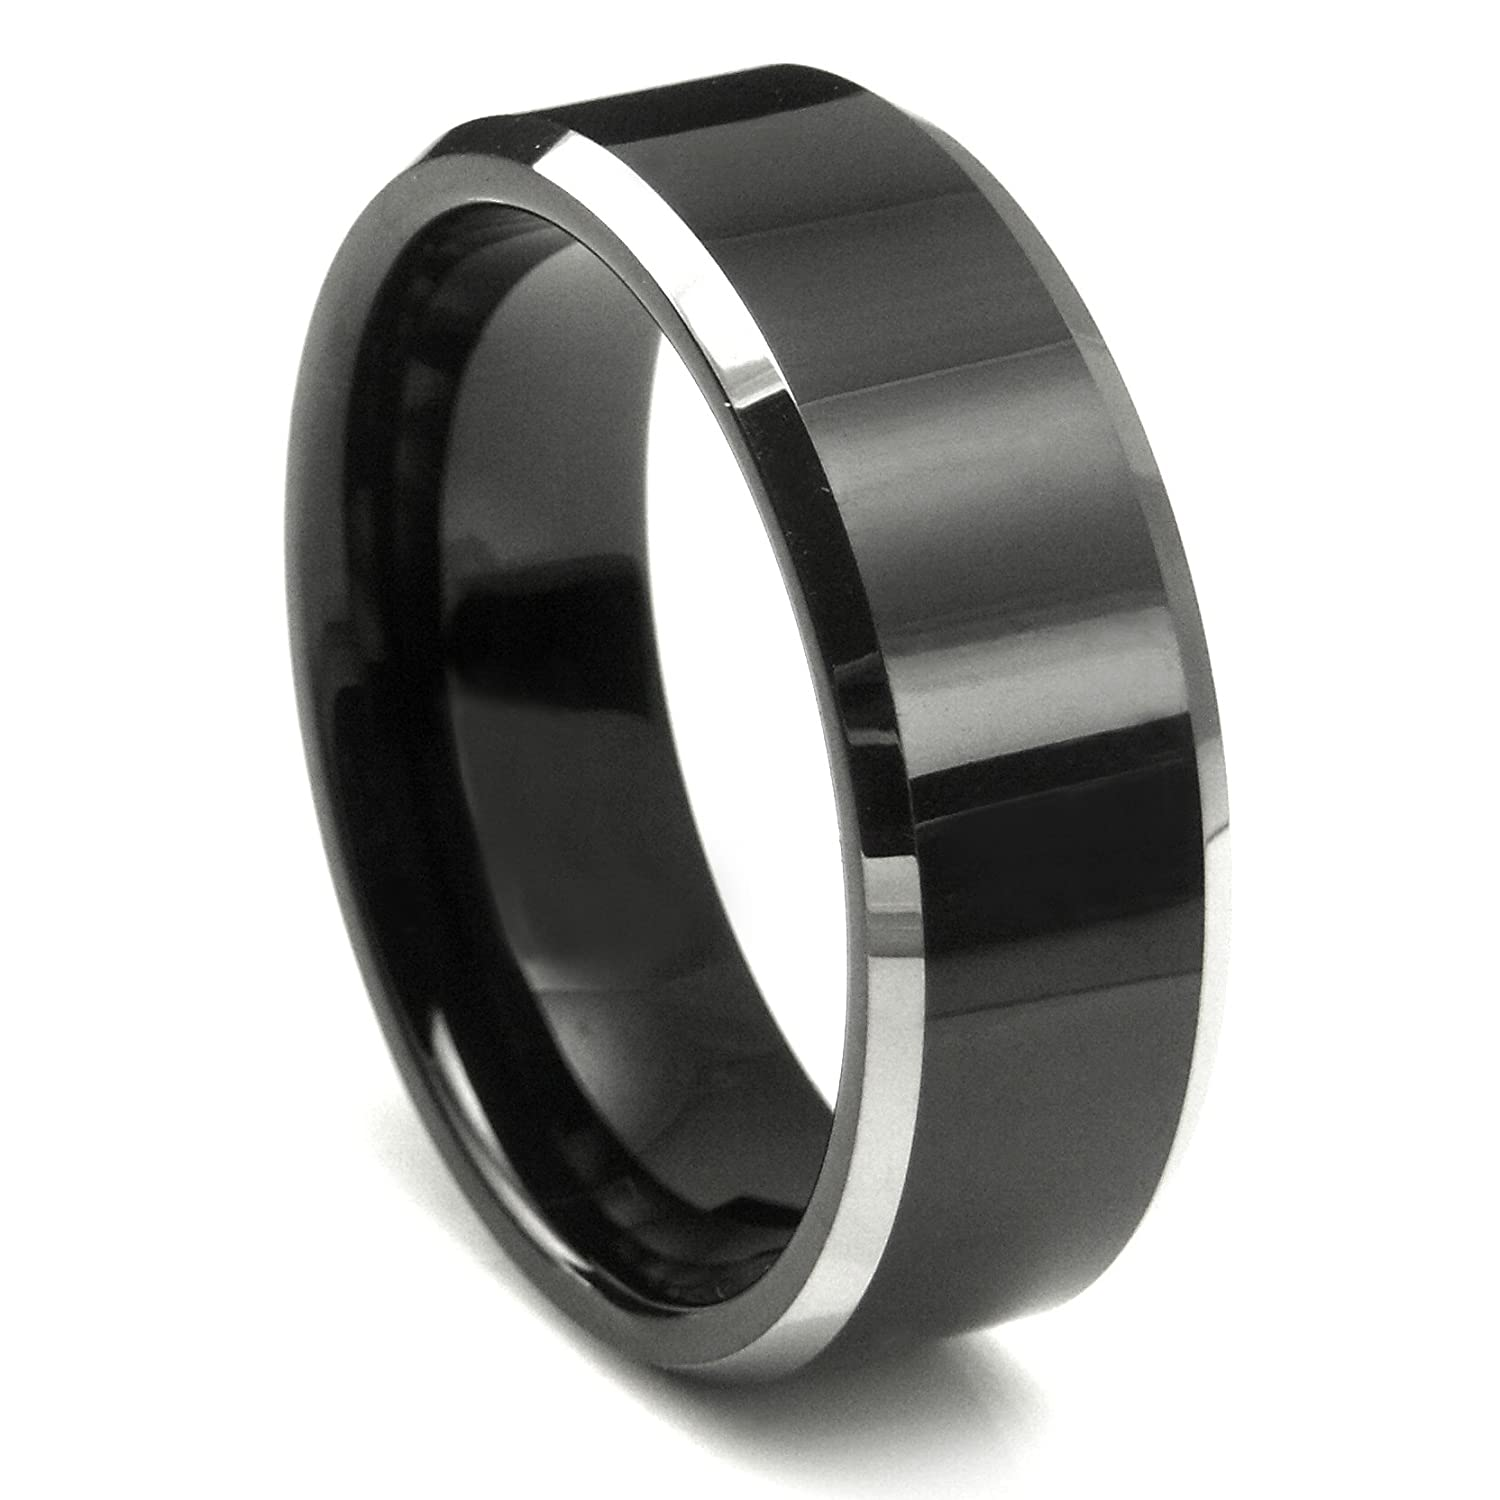 Tungsten Metal Mens Ladies Unisex Ring Wedding Band 8MM 5 16 Inch Flat Top Two Tone Black Beveled Edge Comfort Fit Sz 7 To